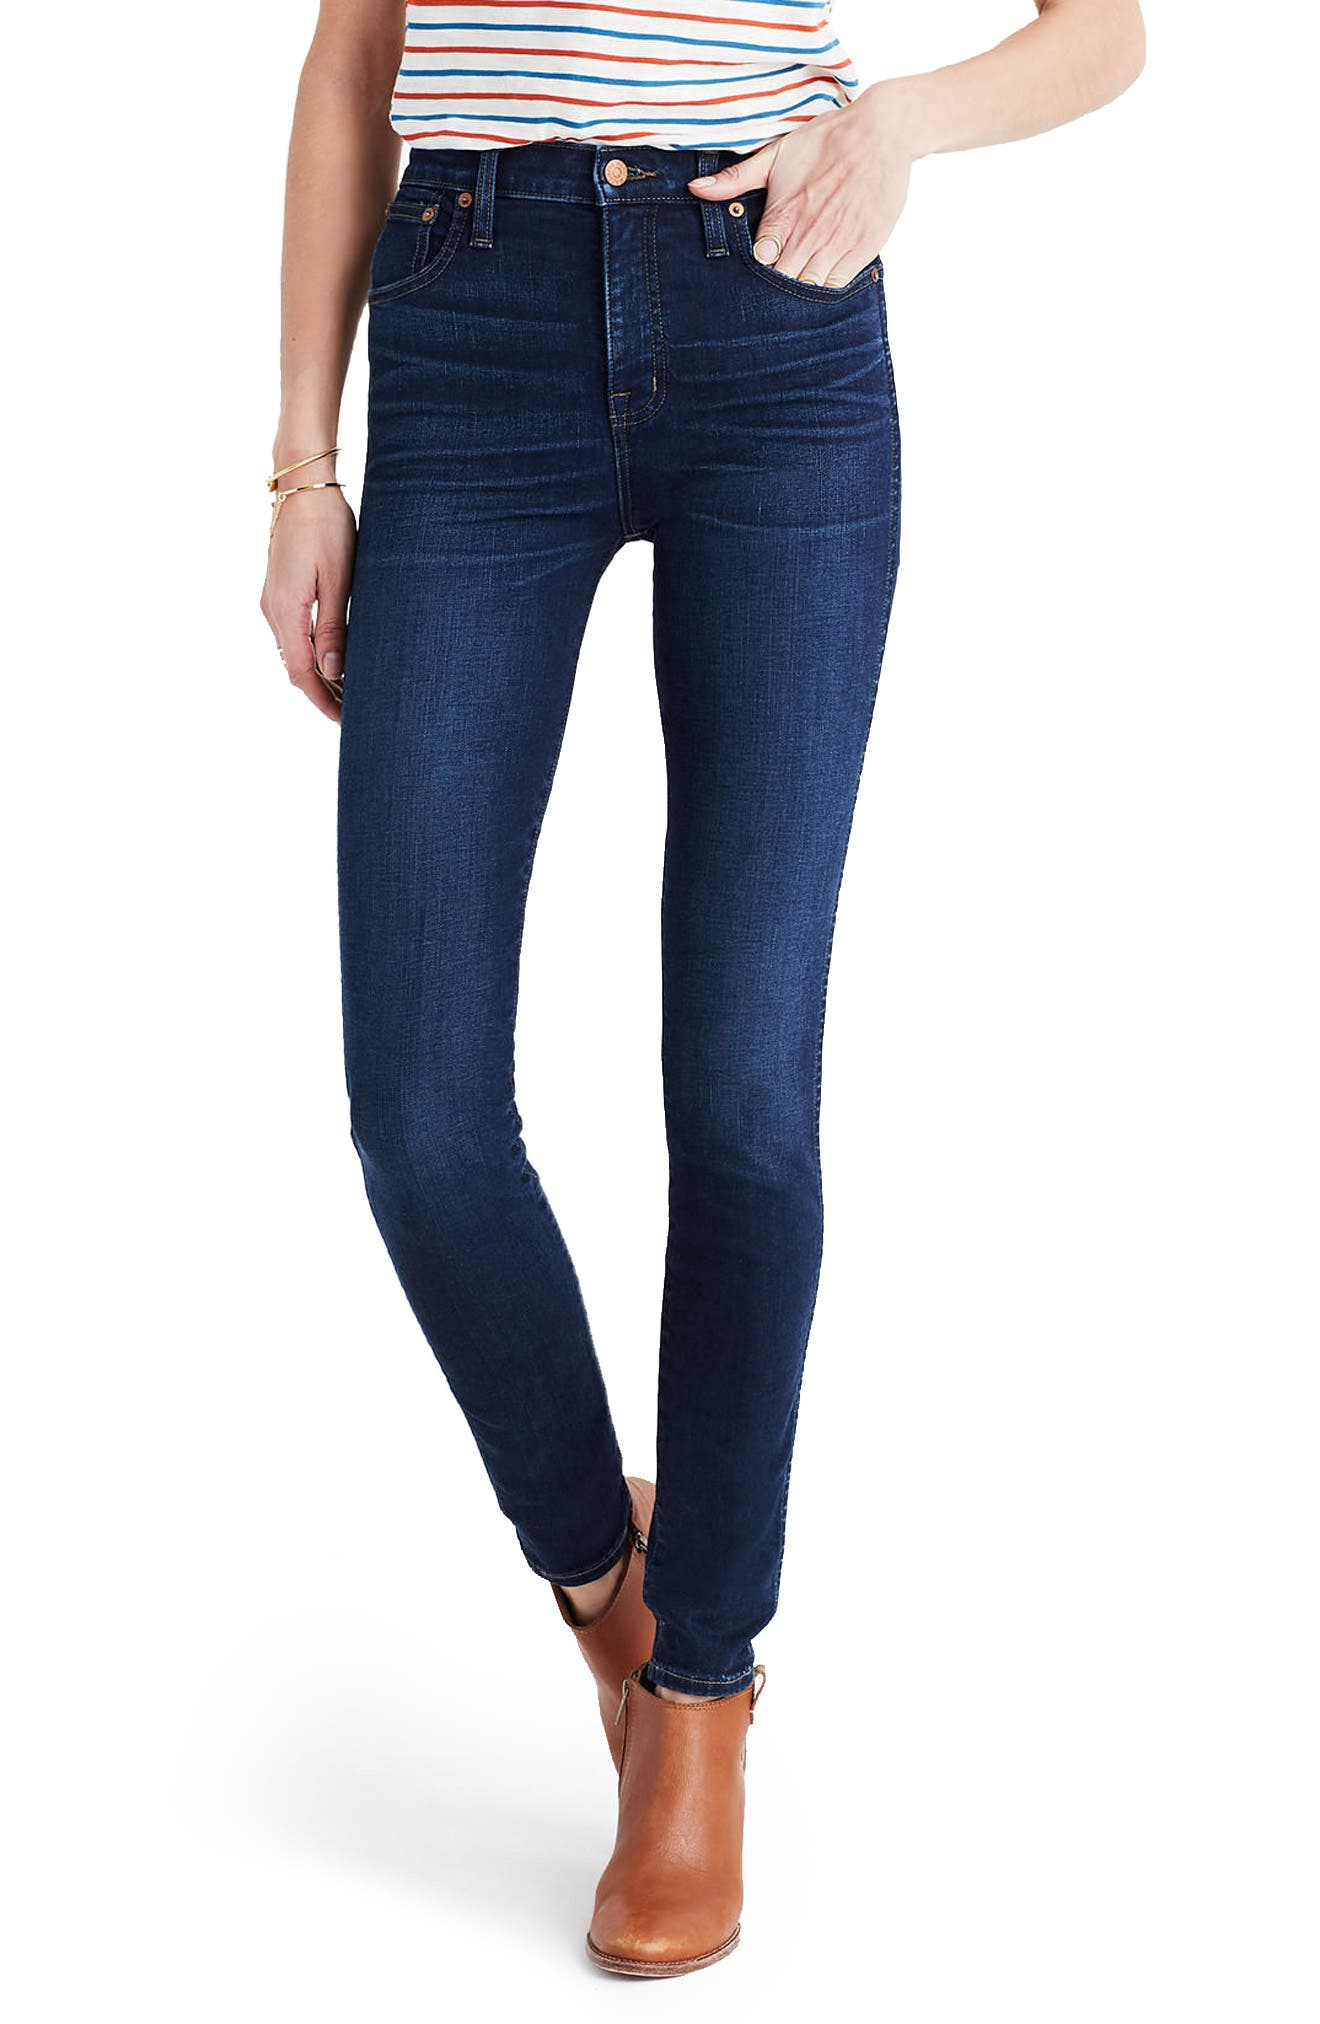 Alternate Image 1 Selected - Madewell 10-Inch High-Rise Skinny Jeans (Hayes Wash)